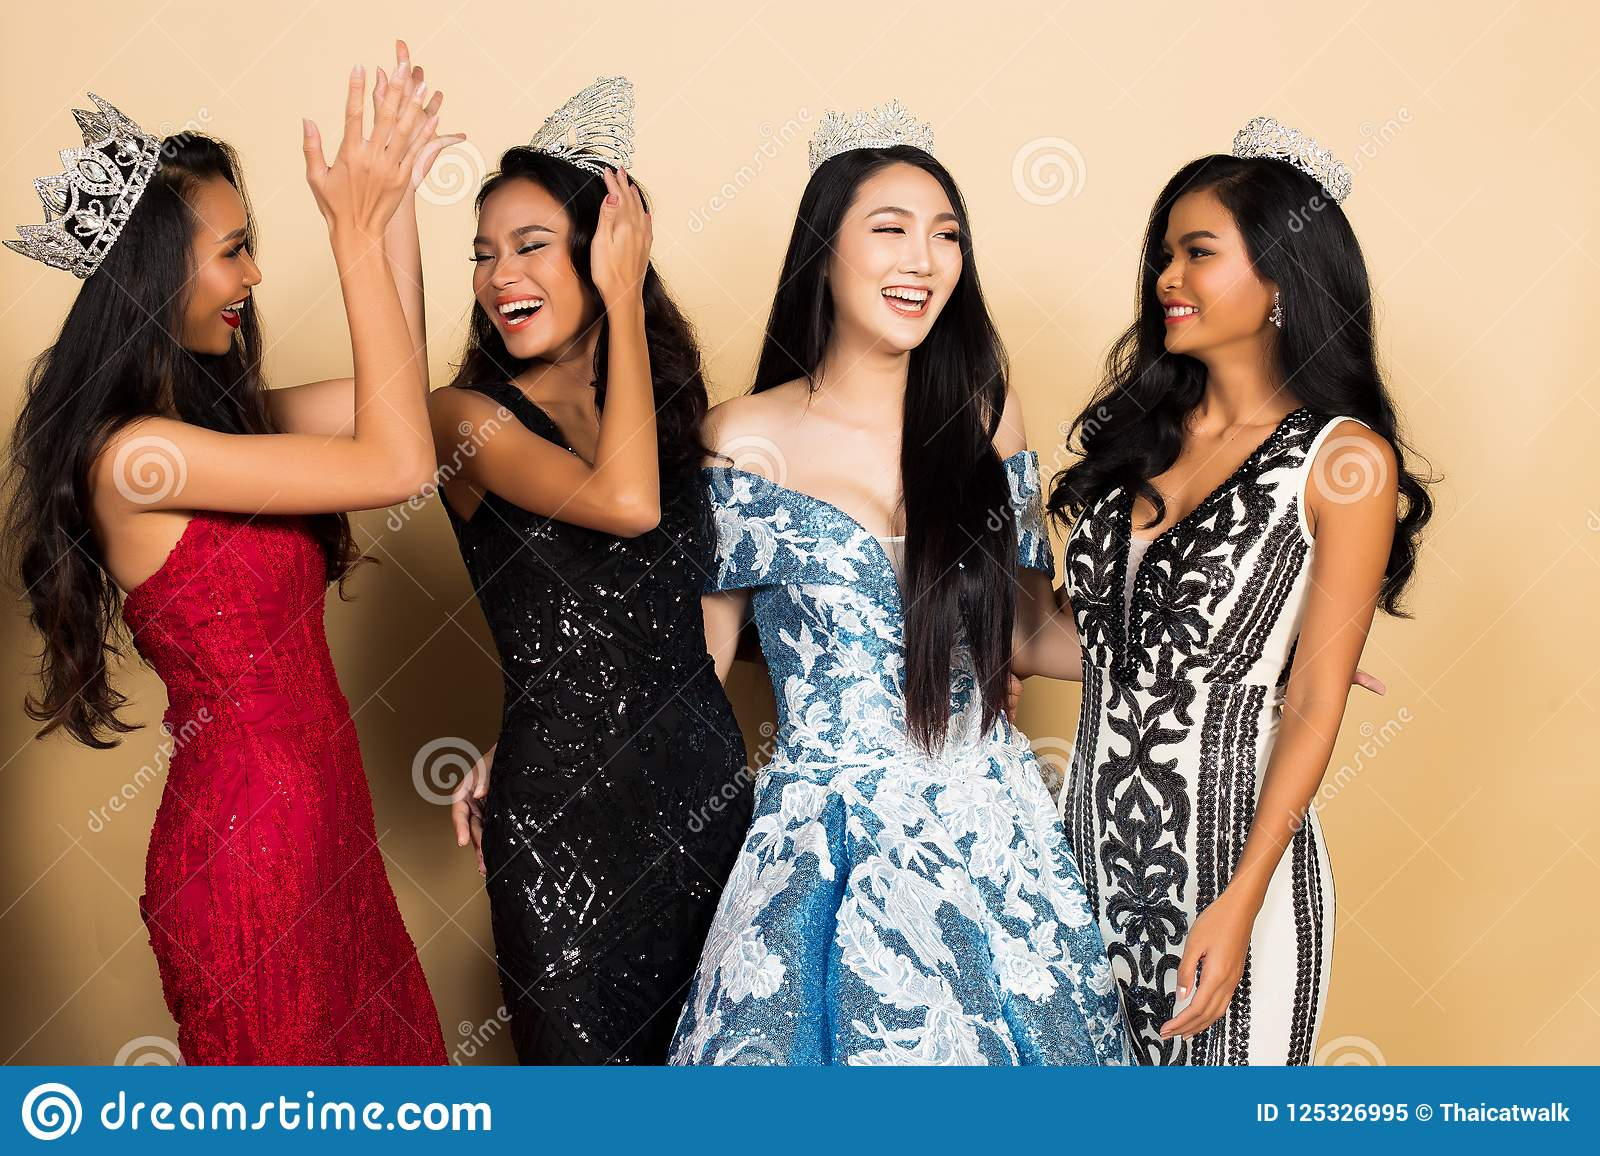 Group of Four Miss Beauty Pageant Queen Contest in Asian Evening Ball Gown  sequin dress with Diamond Crown Sash, multi national race world beauty  contest, ...